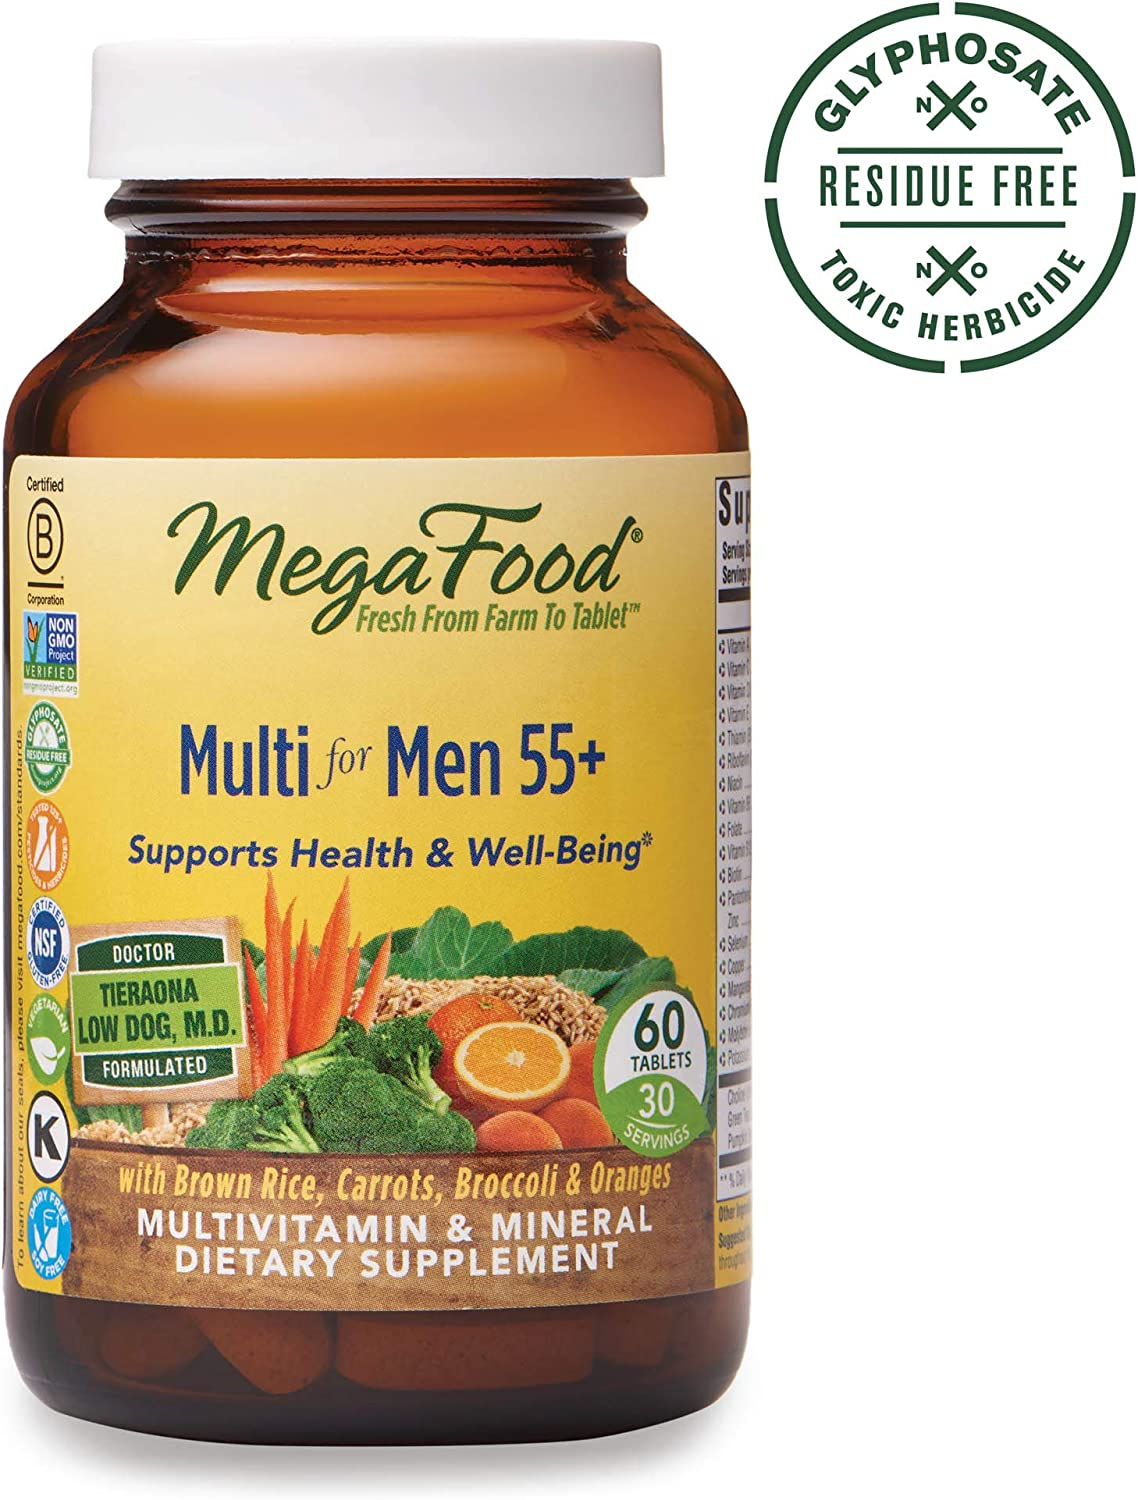 MegaFood, Multi for Men 55 , Supports Optimal Health and Wellbeing, Multivitamin and Mineral Supplement, Gluten Free, Vegetarian, 60 Tablets 30 Servings FFP